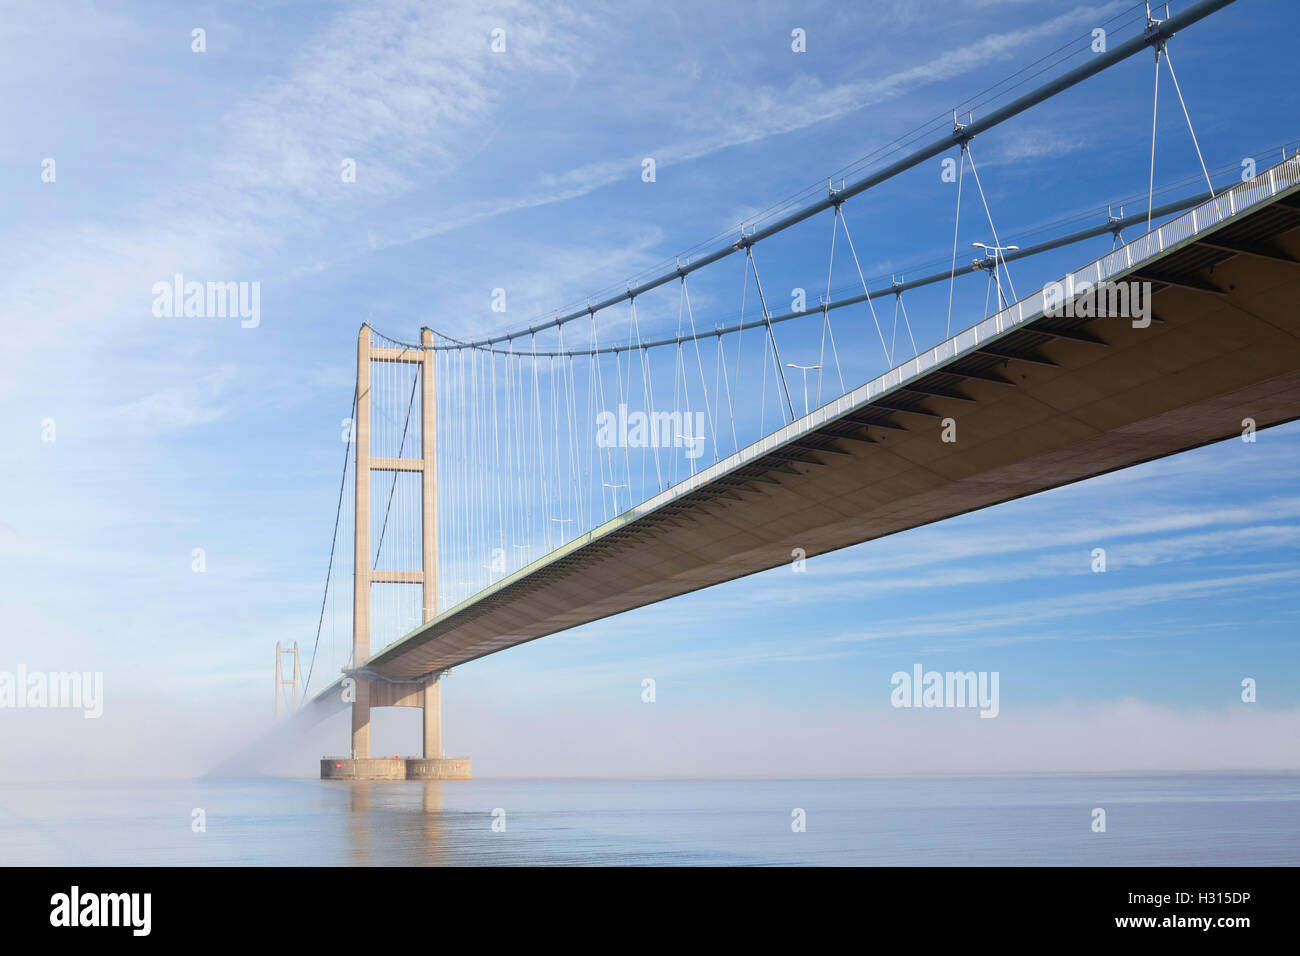 Barton-upon-Humber, North Lincolnshire, UK. 3rd October 2016. The Humber Bridge shrouded in morning mist after a - Stock Image